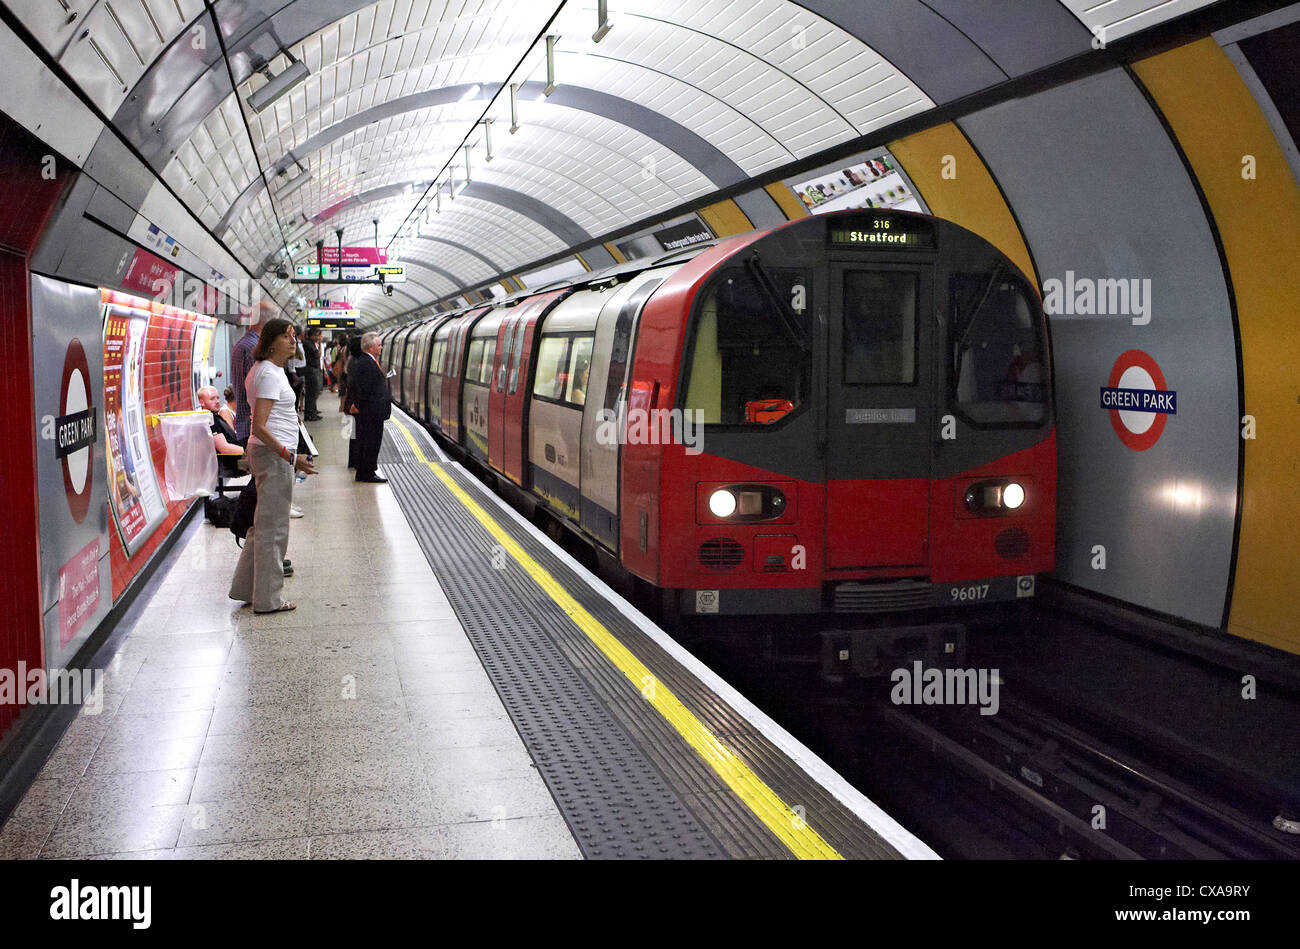 A lonon underground train arrives at green park underground station on 24/09/12 - Stock Image